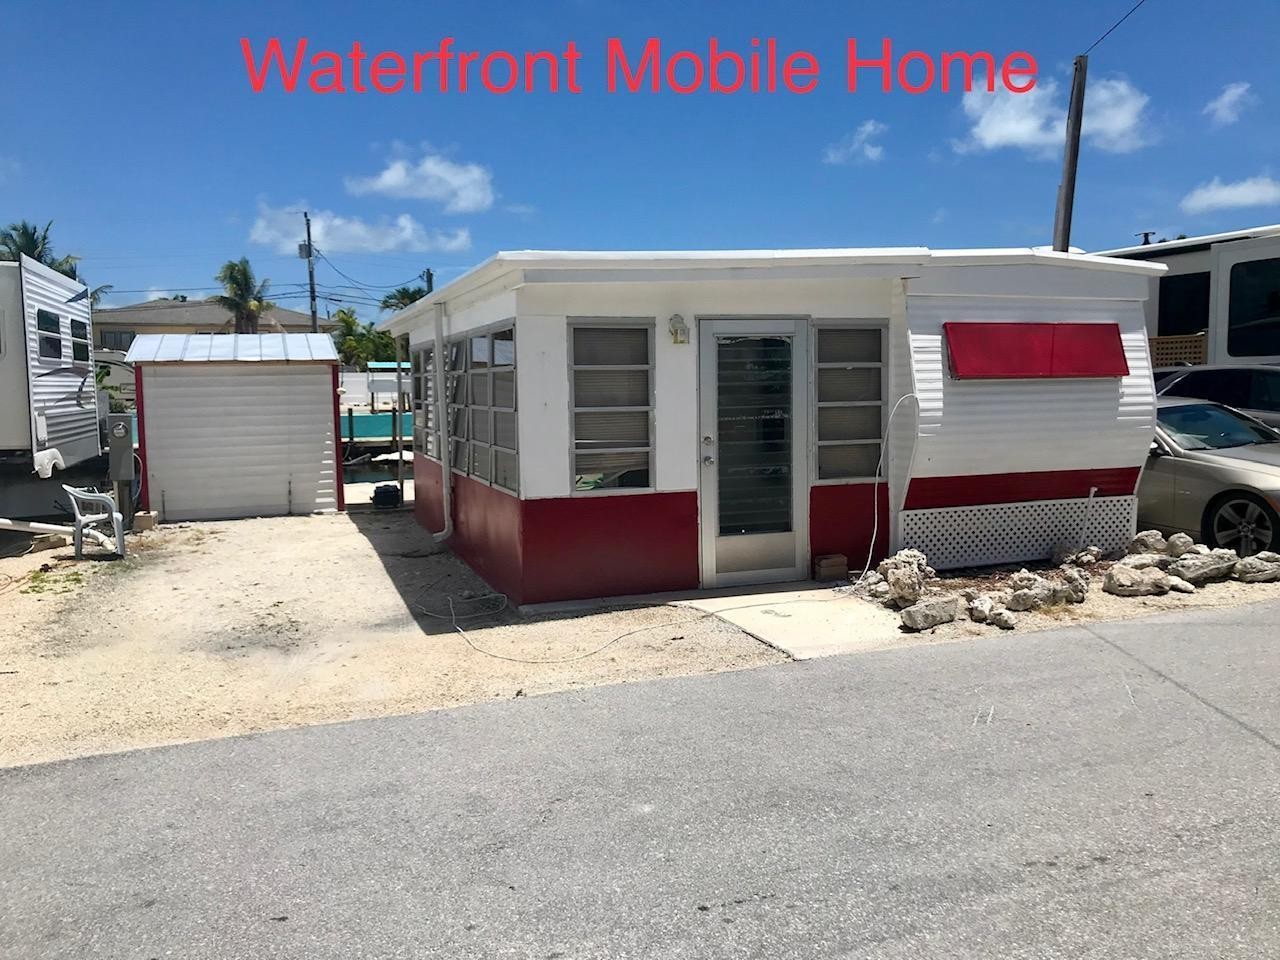 Marathon Mobile Homes | FL Keys Real Estate | Islamorada | Marathon